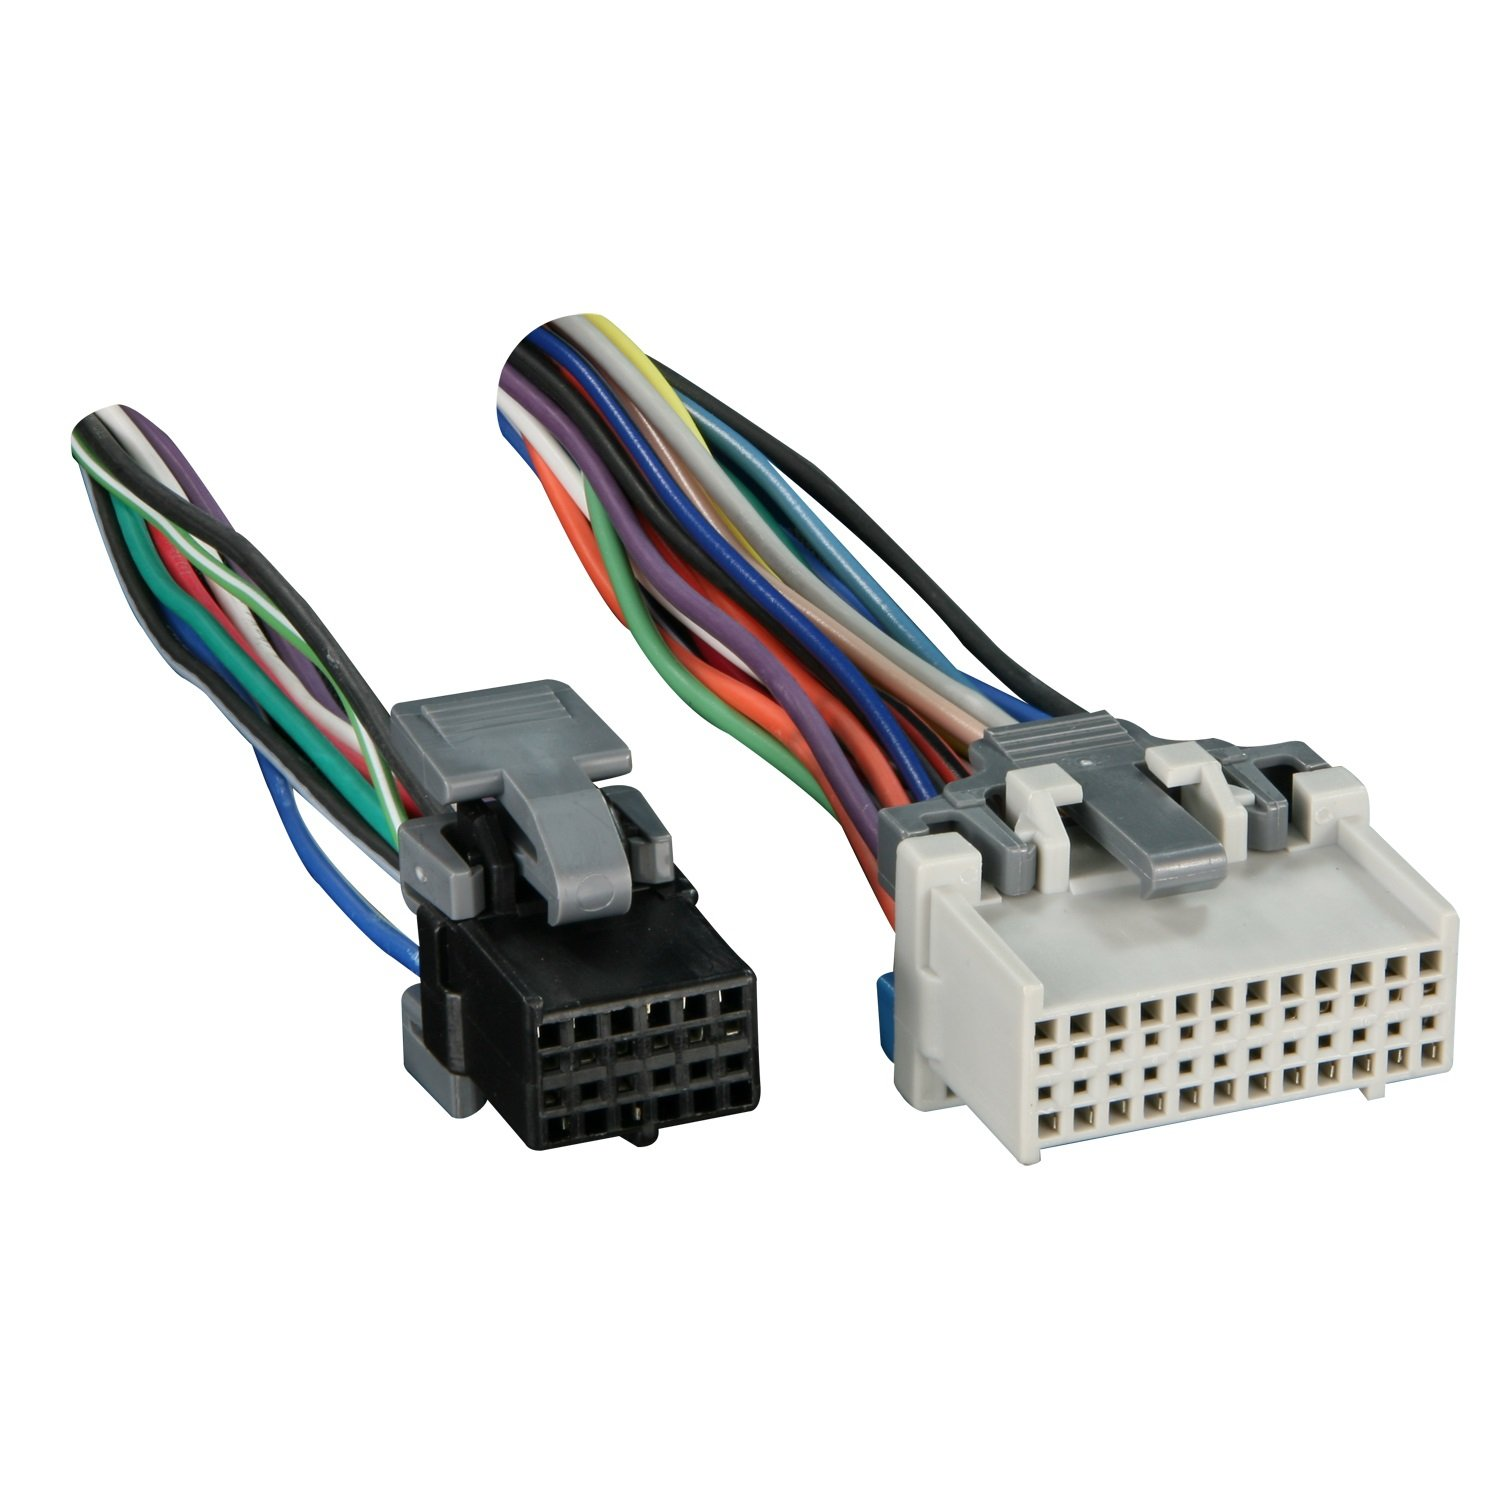 711log4bdML._SL1500_ amazon com metra turbowires 71 2003 1 wiring harness car electronics radio wire harness kits at gsmx.co